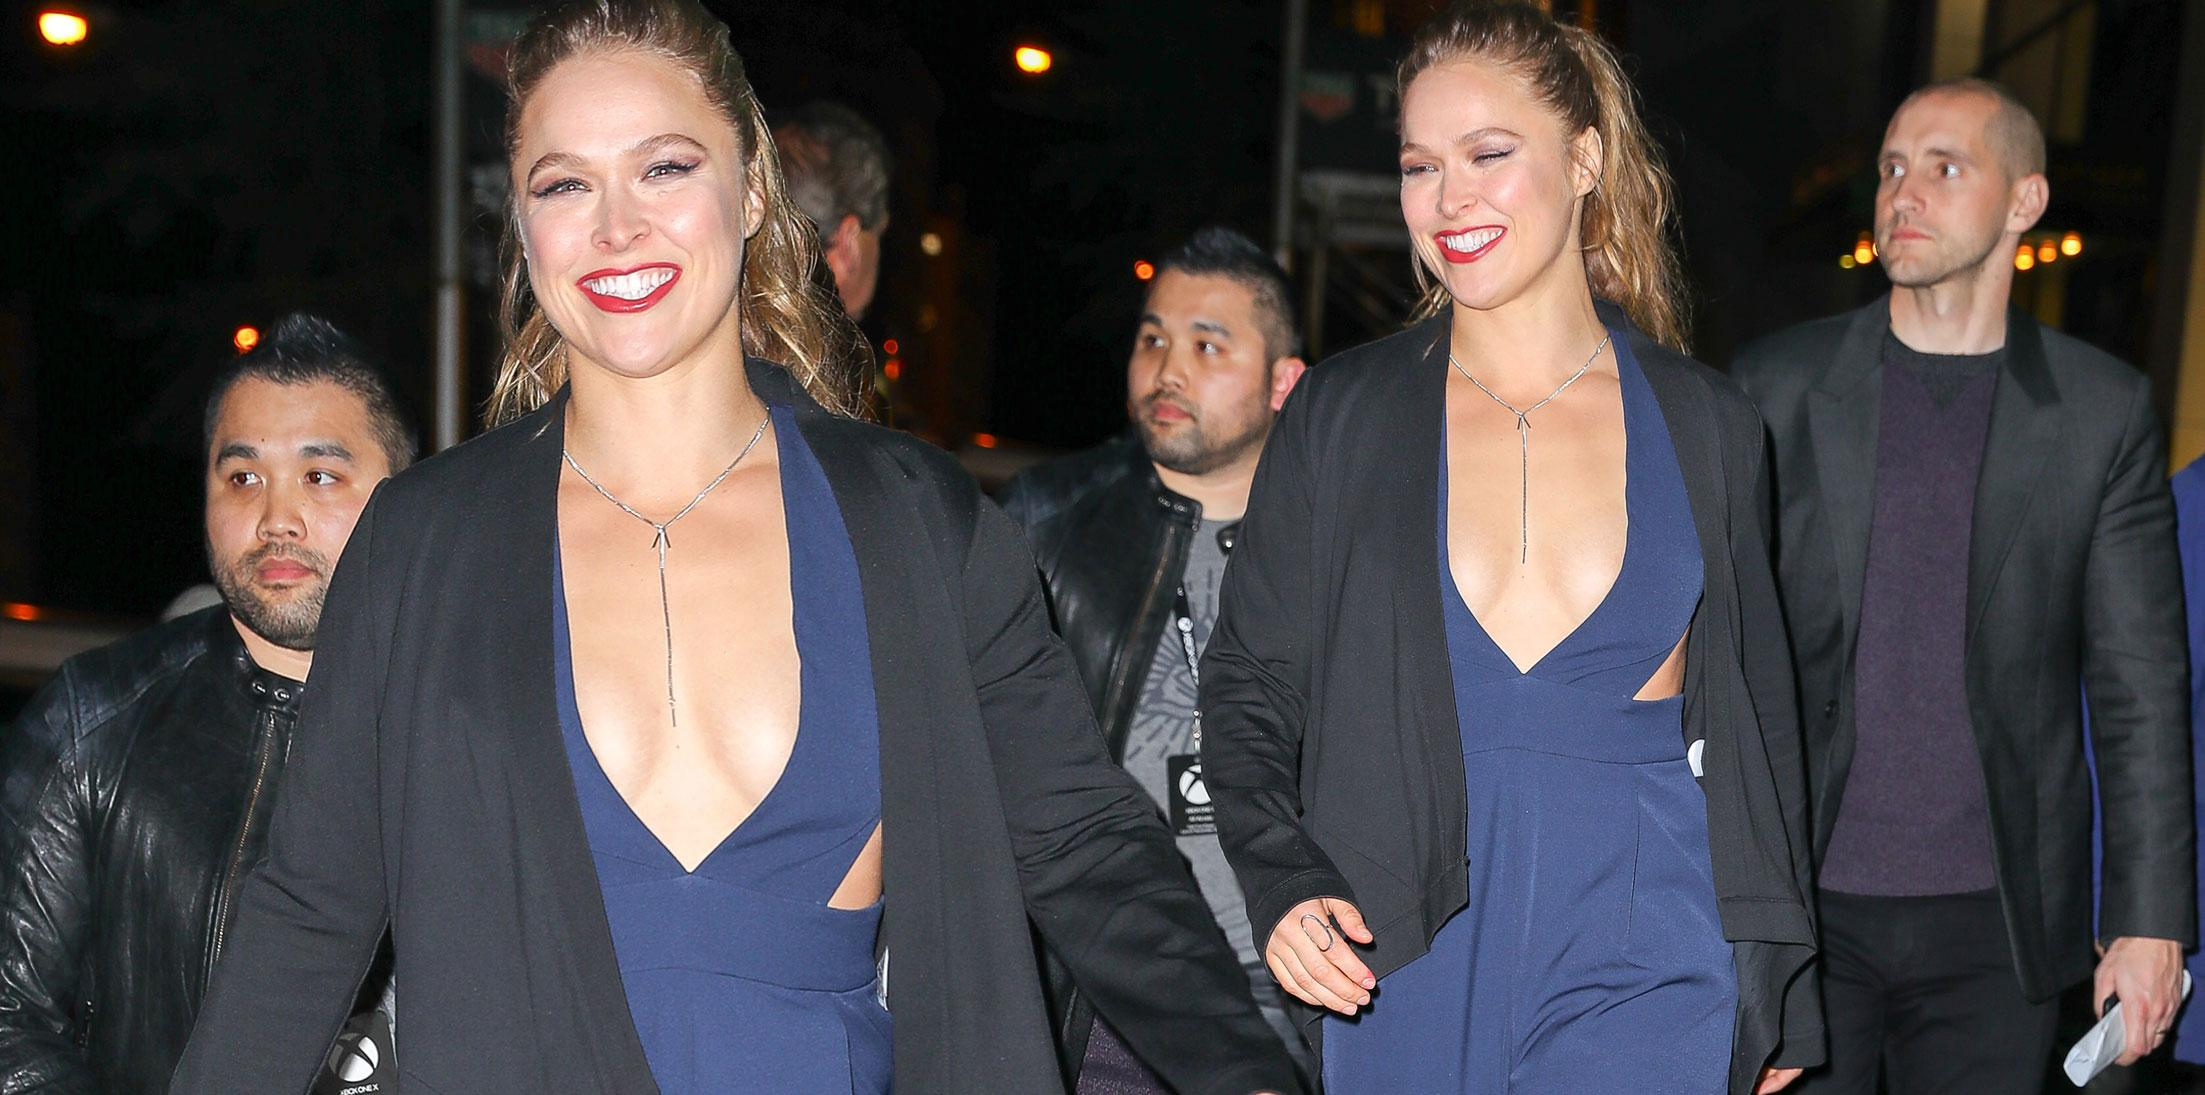 Ronda Rousey Busting Out Xbox Event